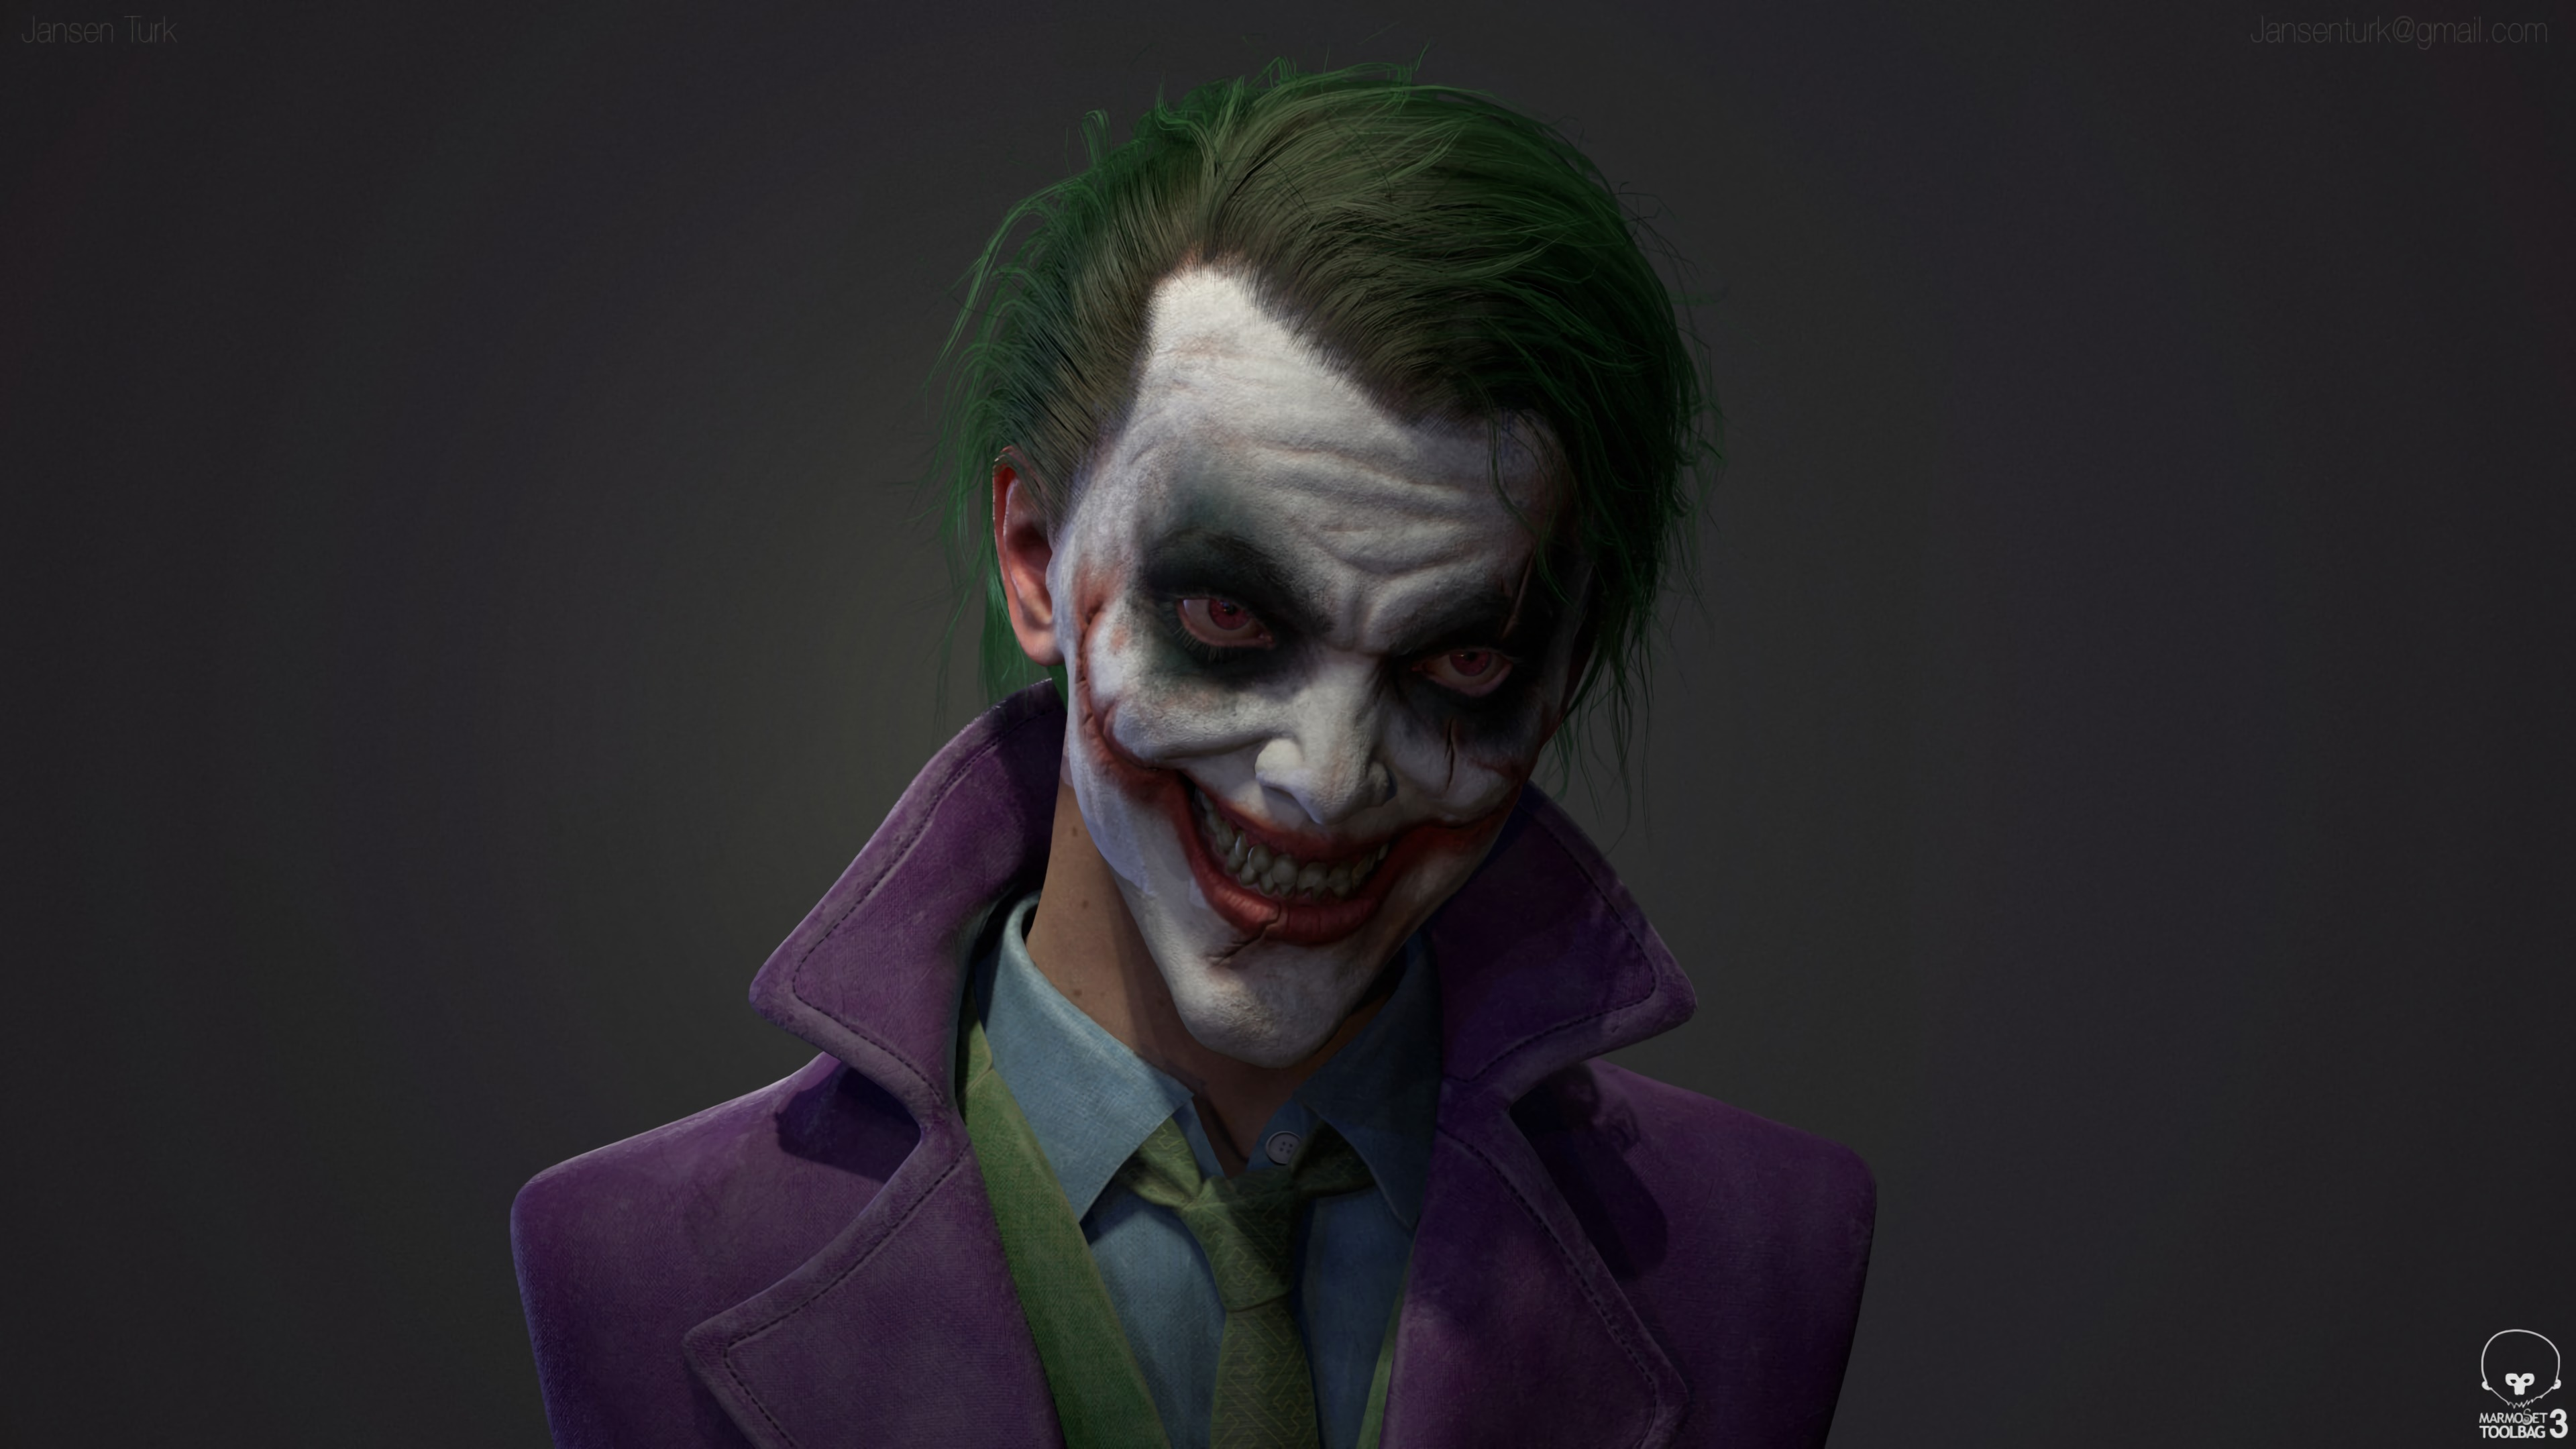 joker new 1568054466 - Joker new - superheroes wallpapers, joker wallpapers, hd-wallpapers, dc comics wallpapers, artstation wallpapers, 4k-wallpapers